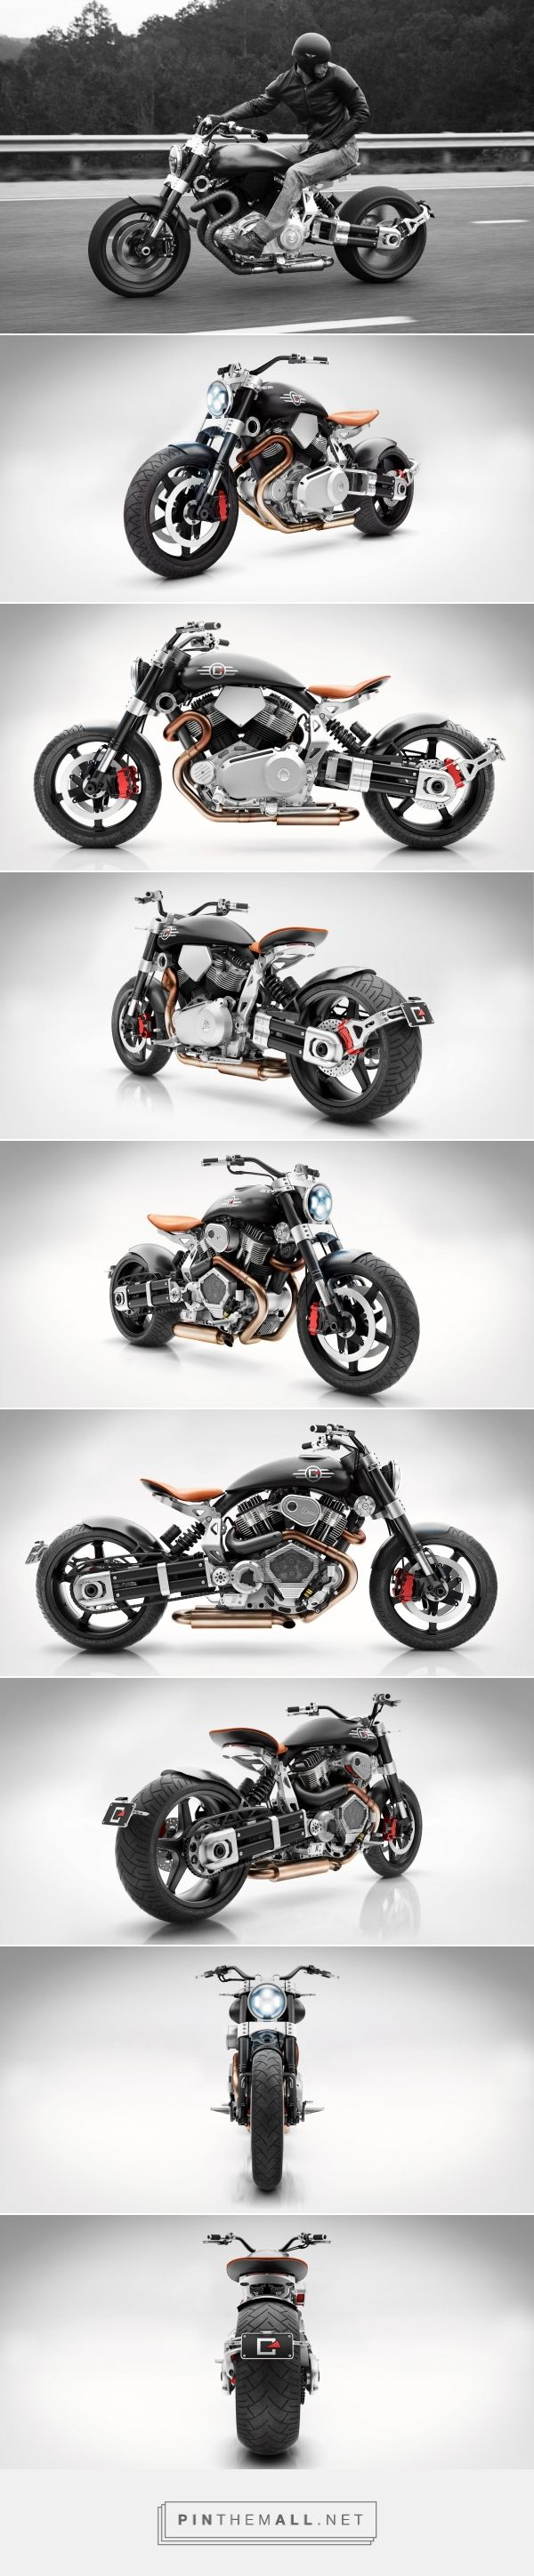 Hellcat | Confederate Motorcycles.  Thanks for visiting my 'Time Machine' boards Guys! (J Train)